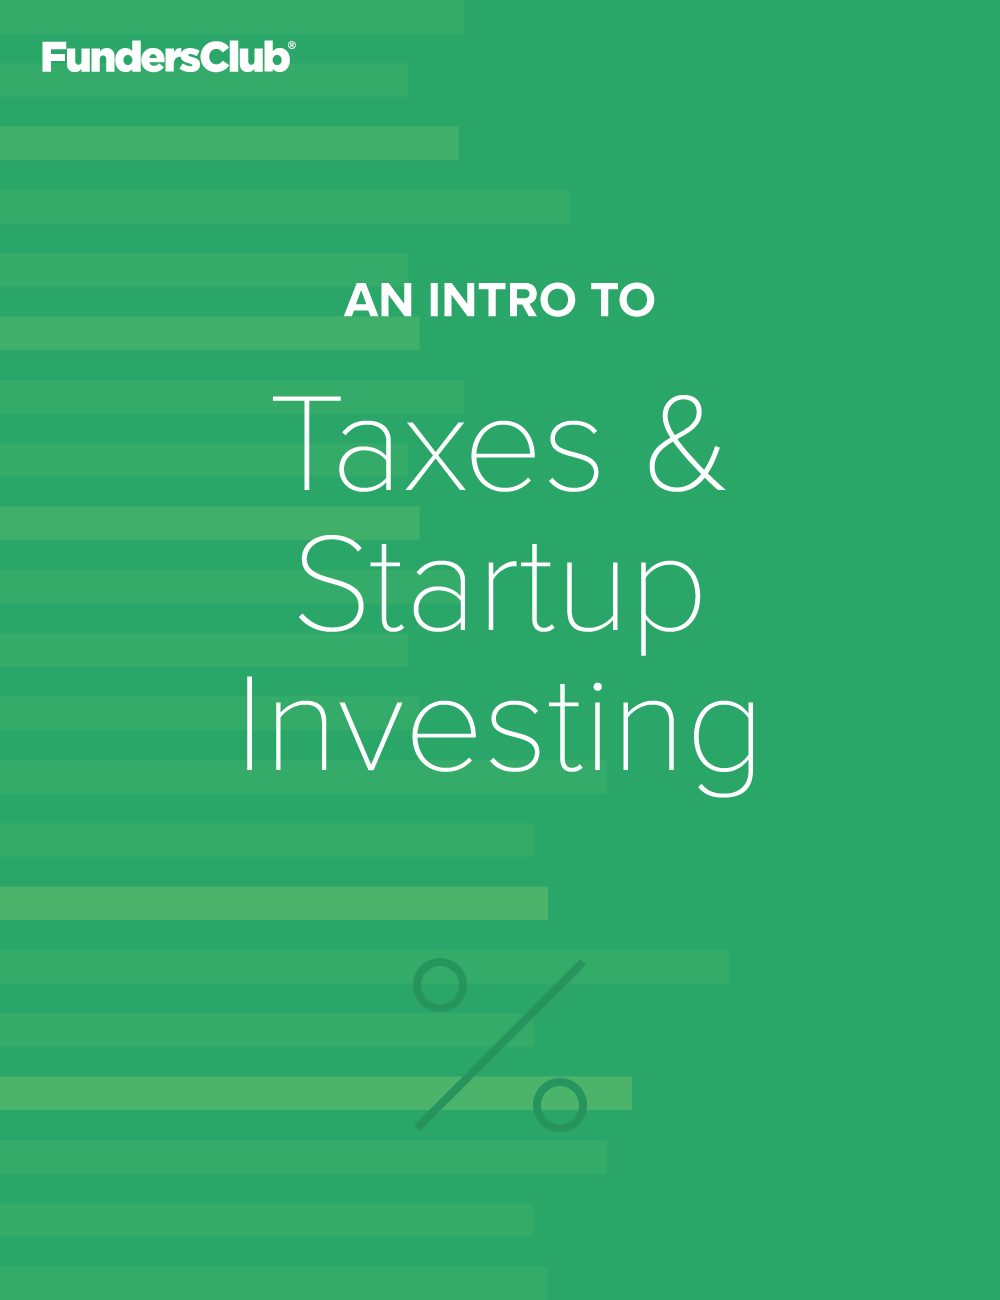 Taxes & Startup Investing